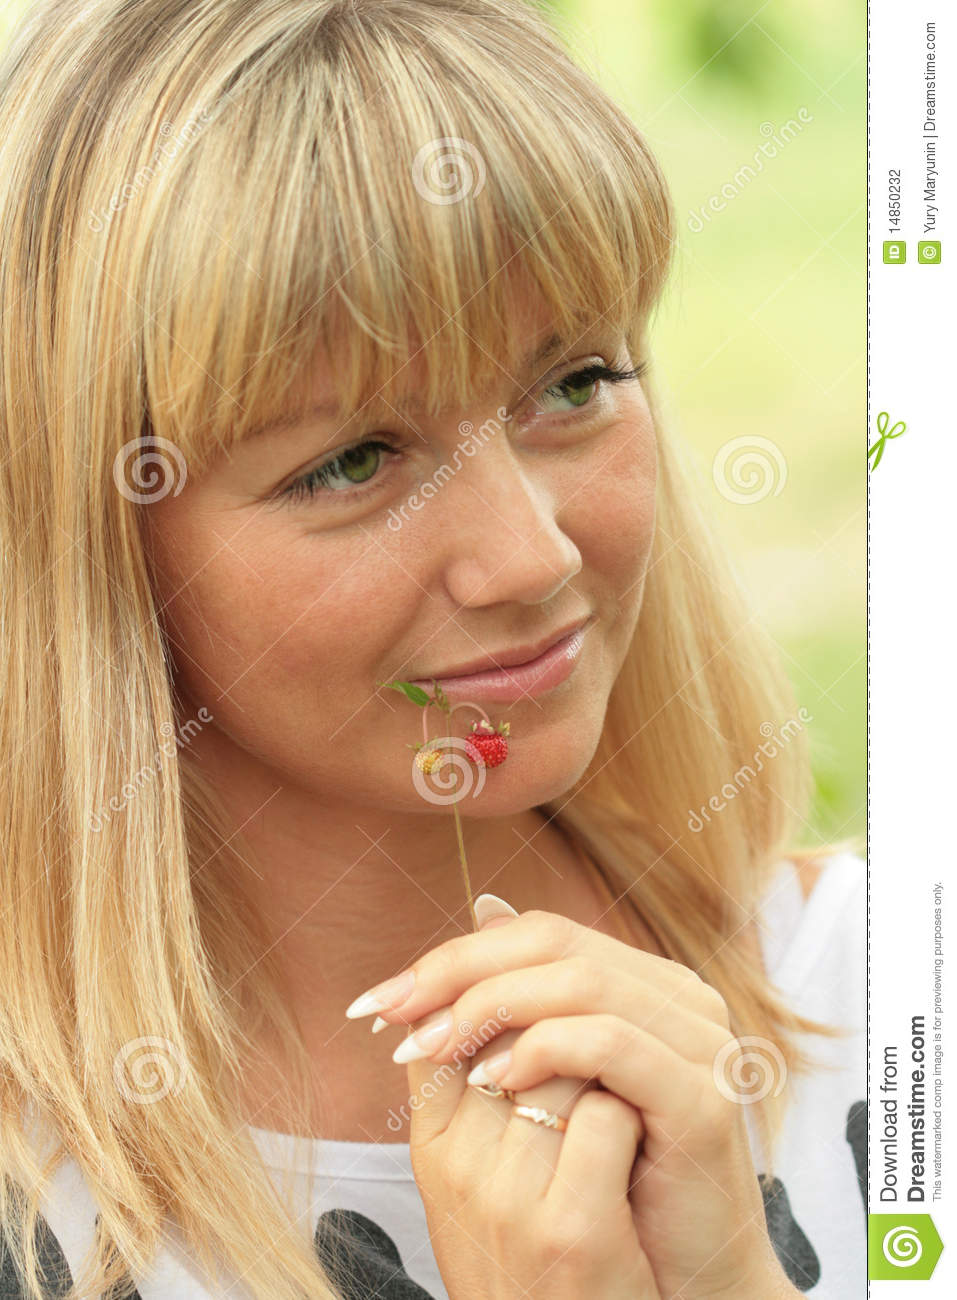 Portrait of the blonde with a sad smile